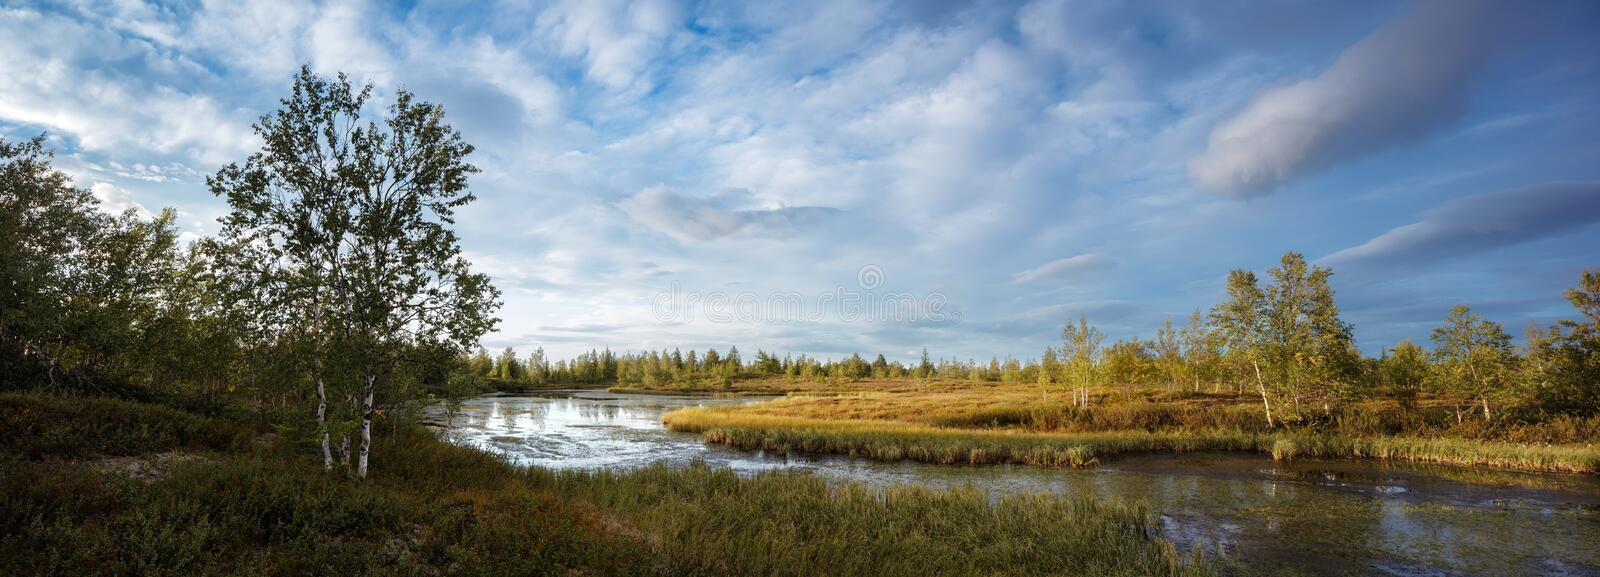 Beautiful panorama of landscape of lake in northern forest, high resolution for print. royalty free stock photo